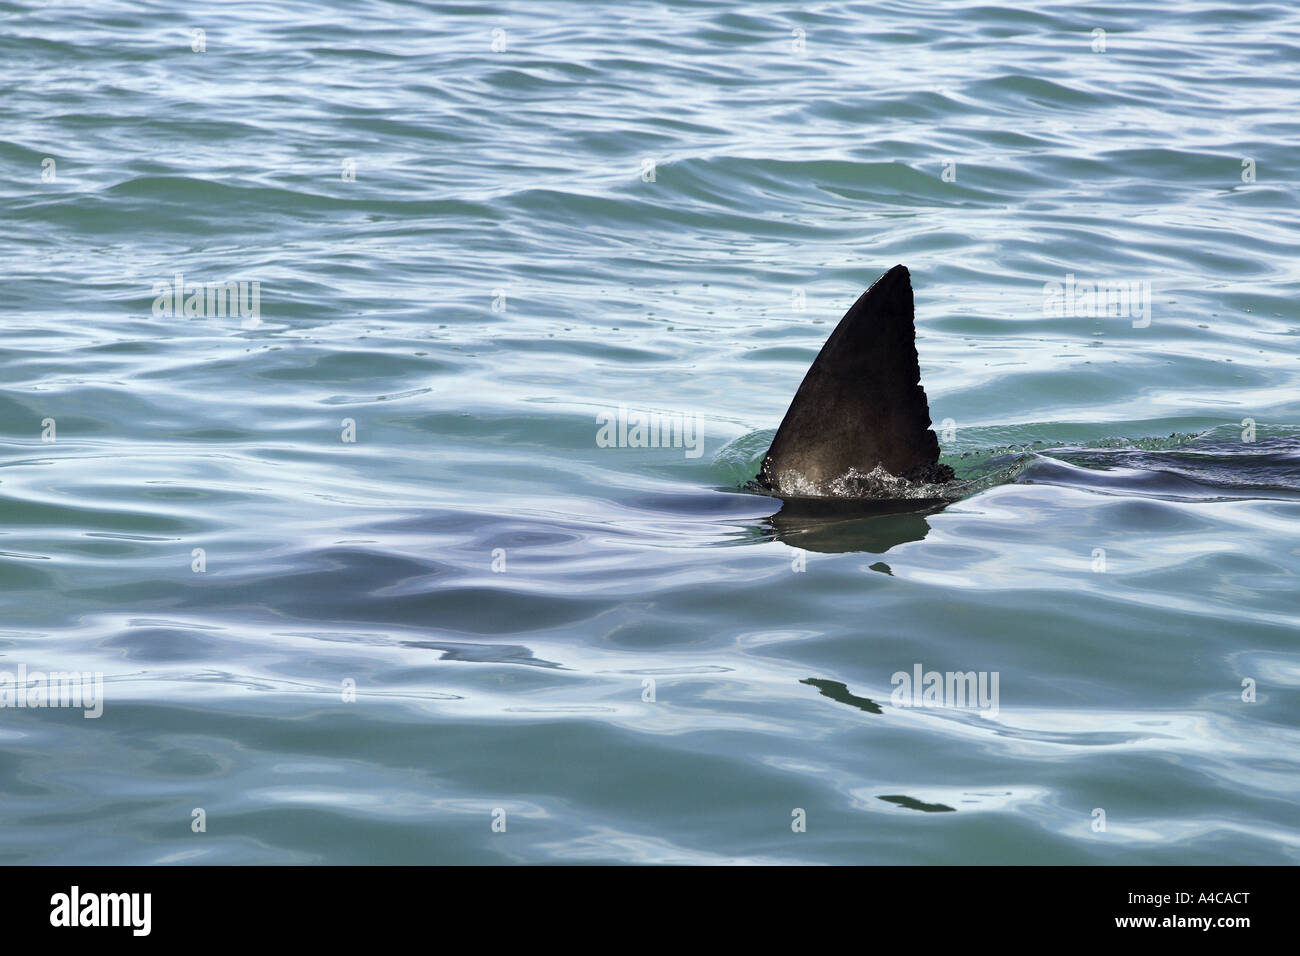 great white shark dorsal fin breaking surface South Africa - Stock Image